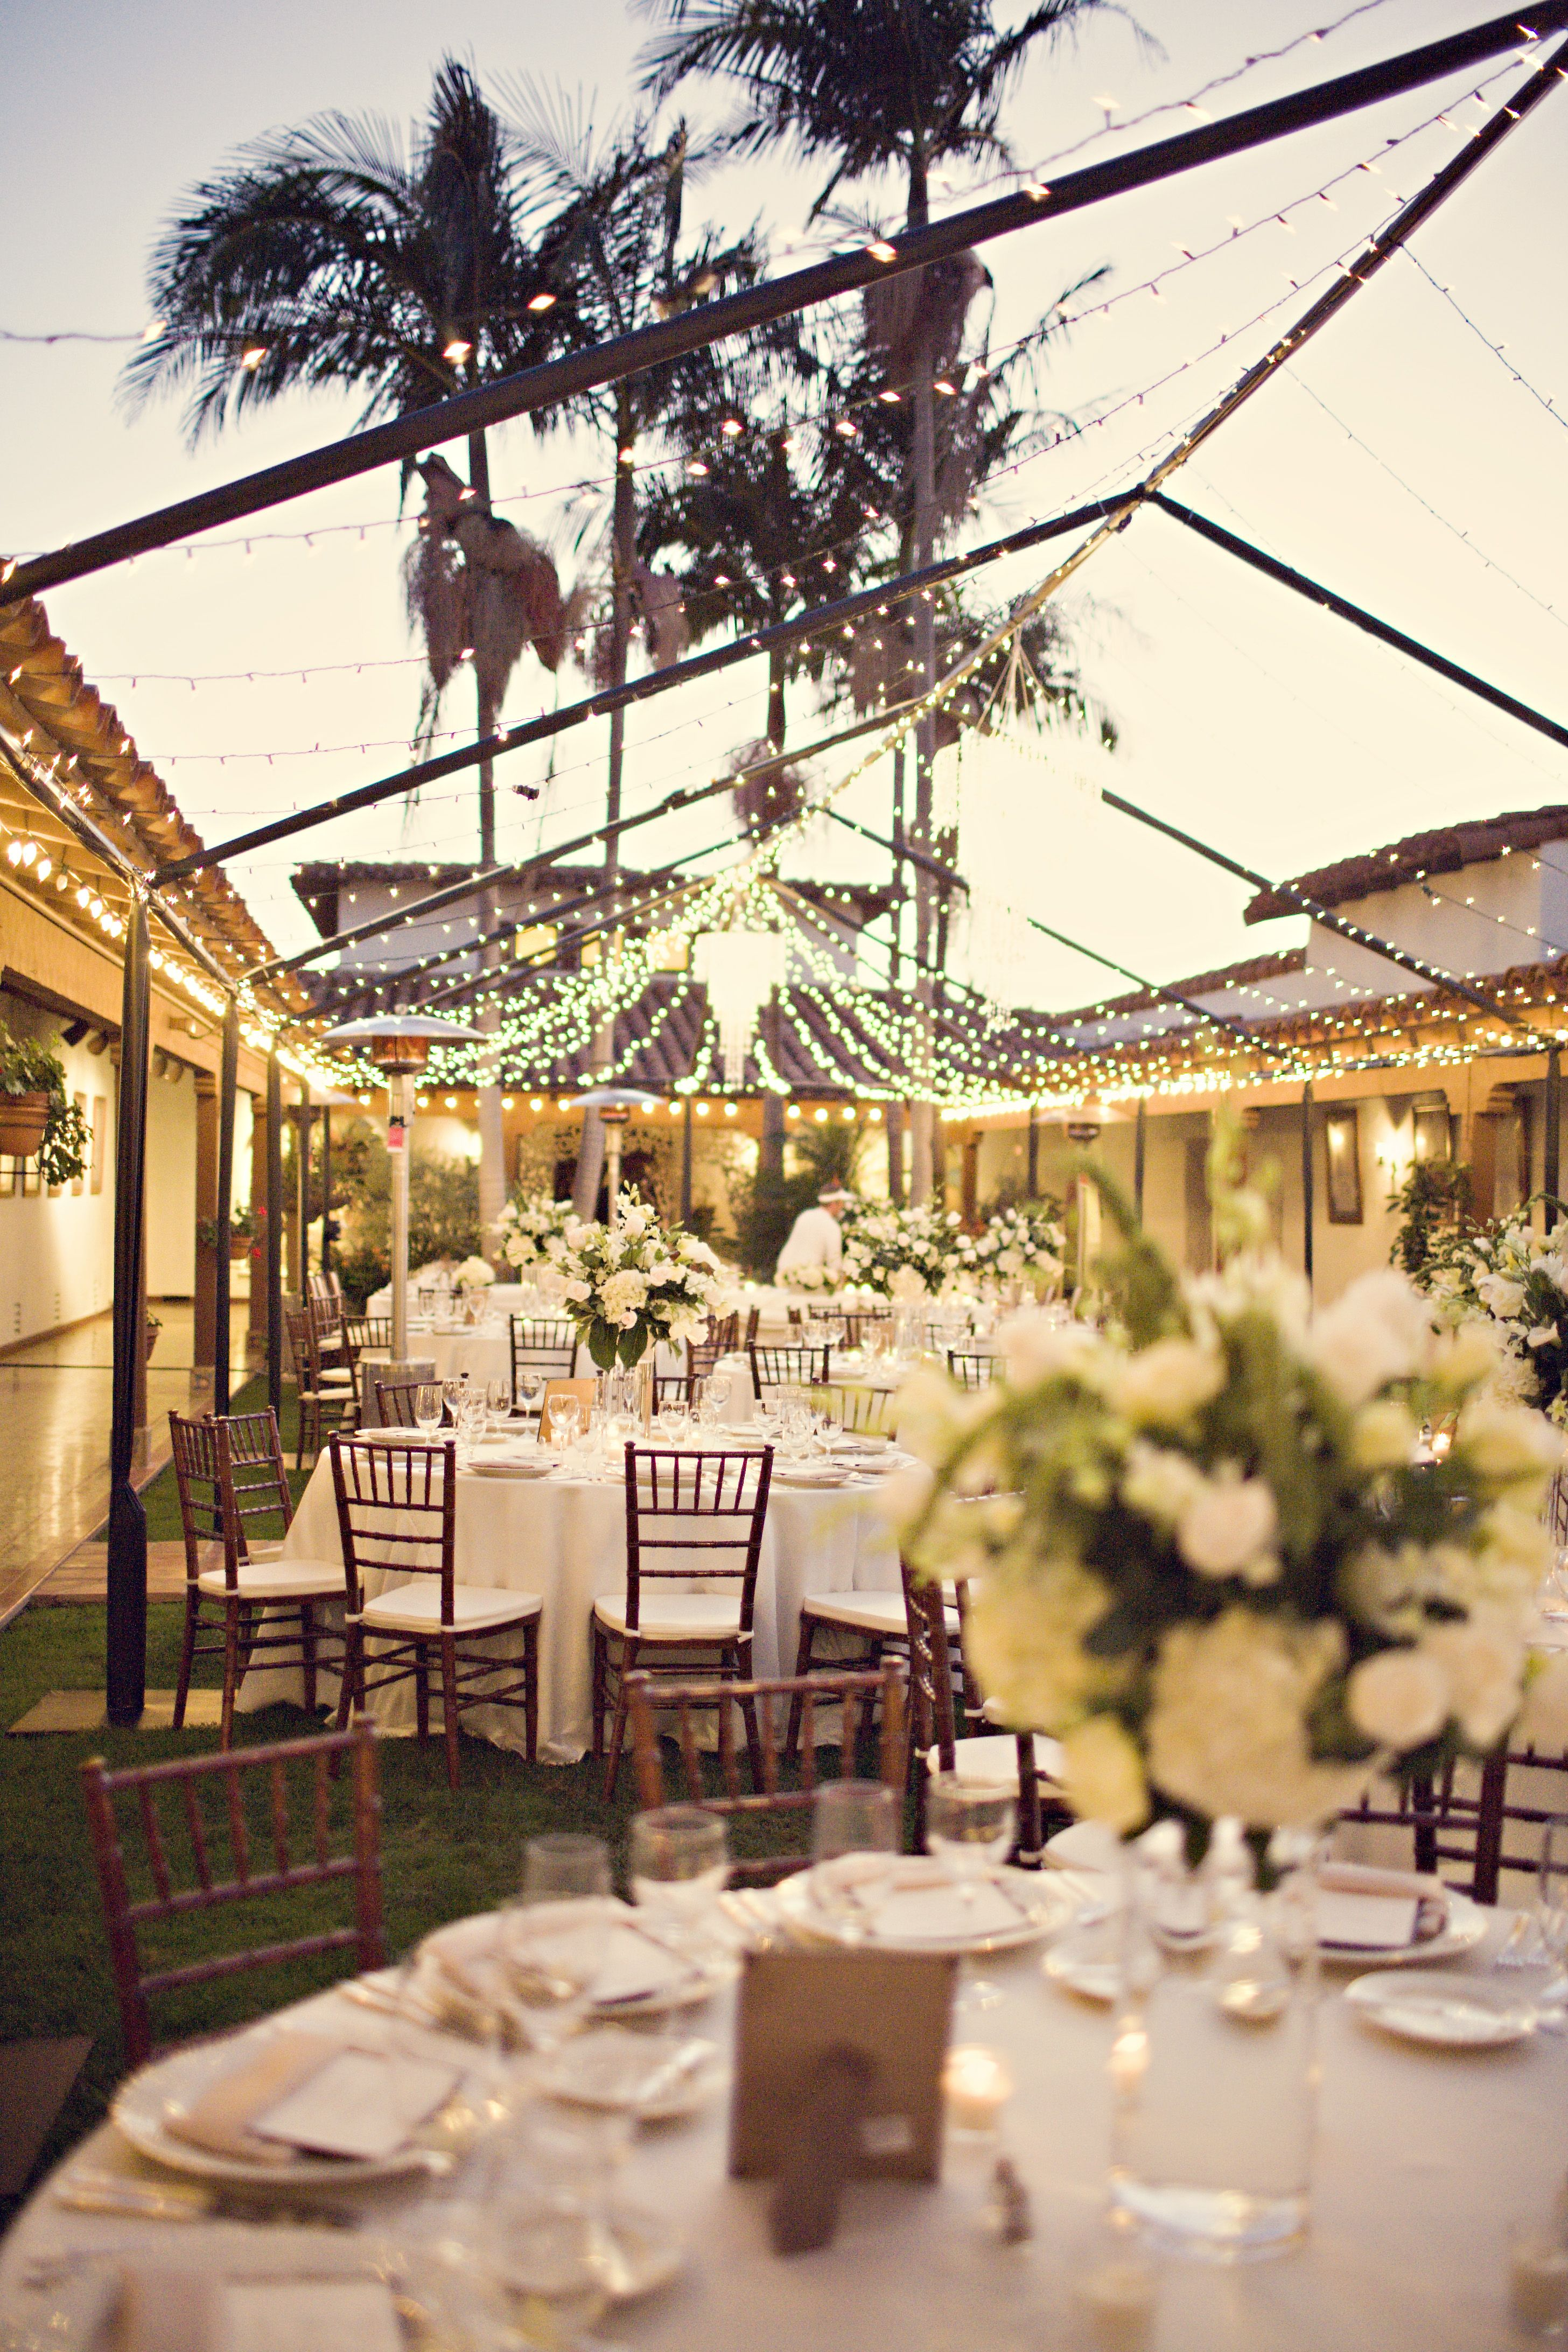 beautiful tent with lights Wedding venues beach